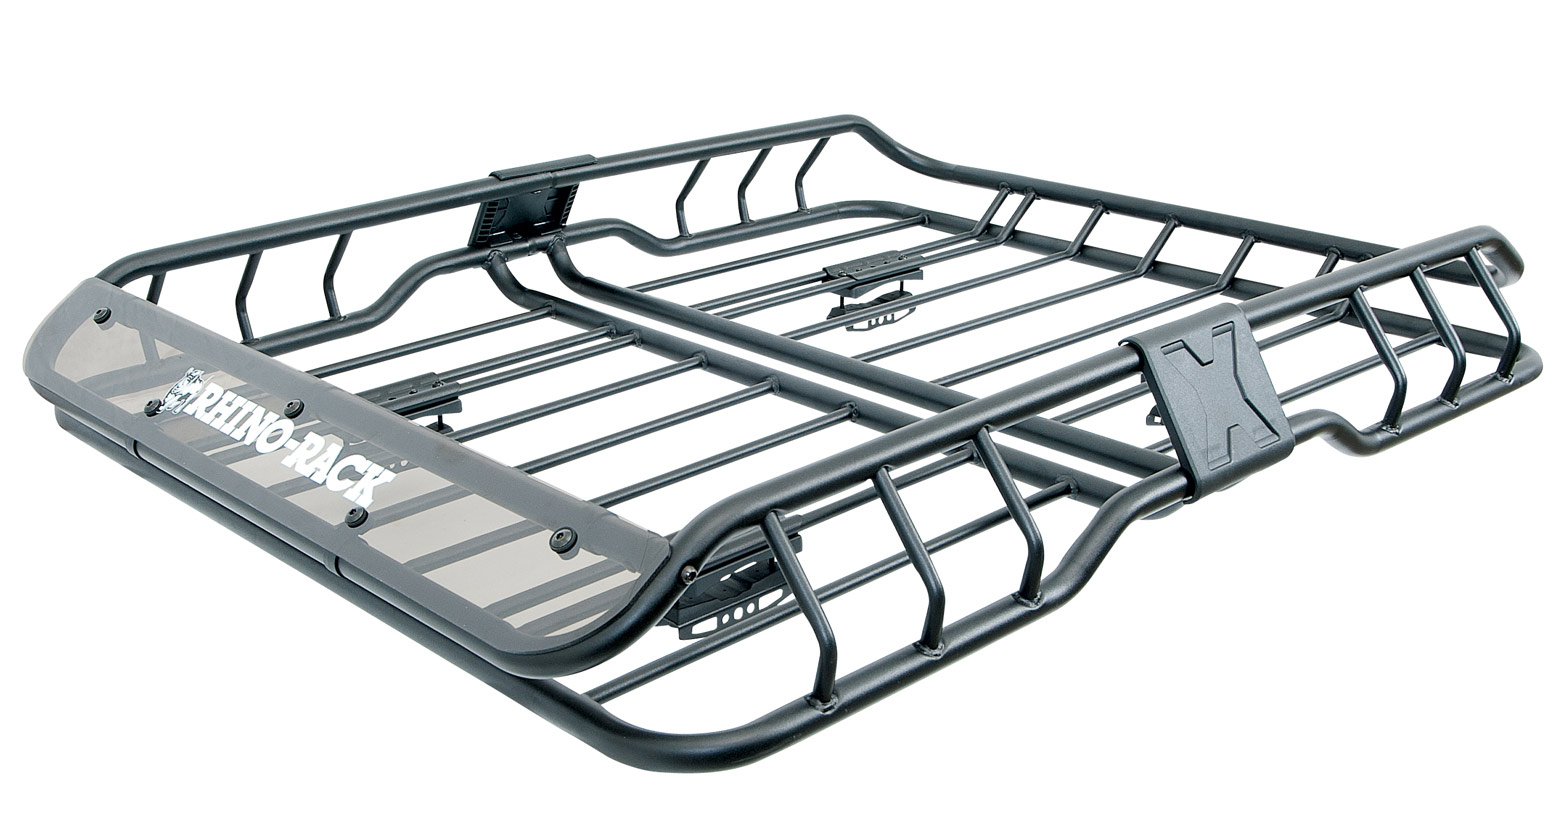 elevation rhino en ca roof rack racks pioneer products x tradie